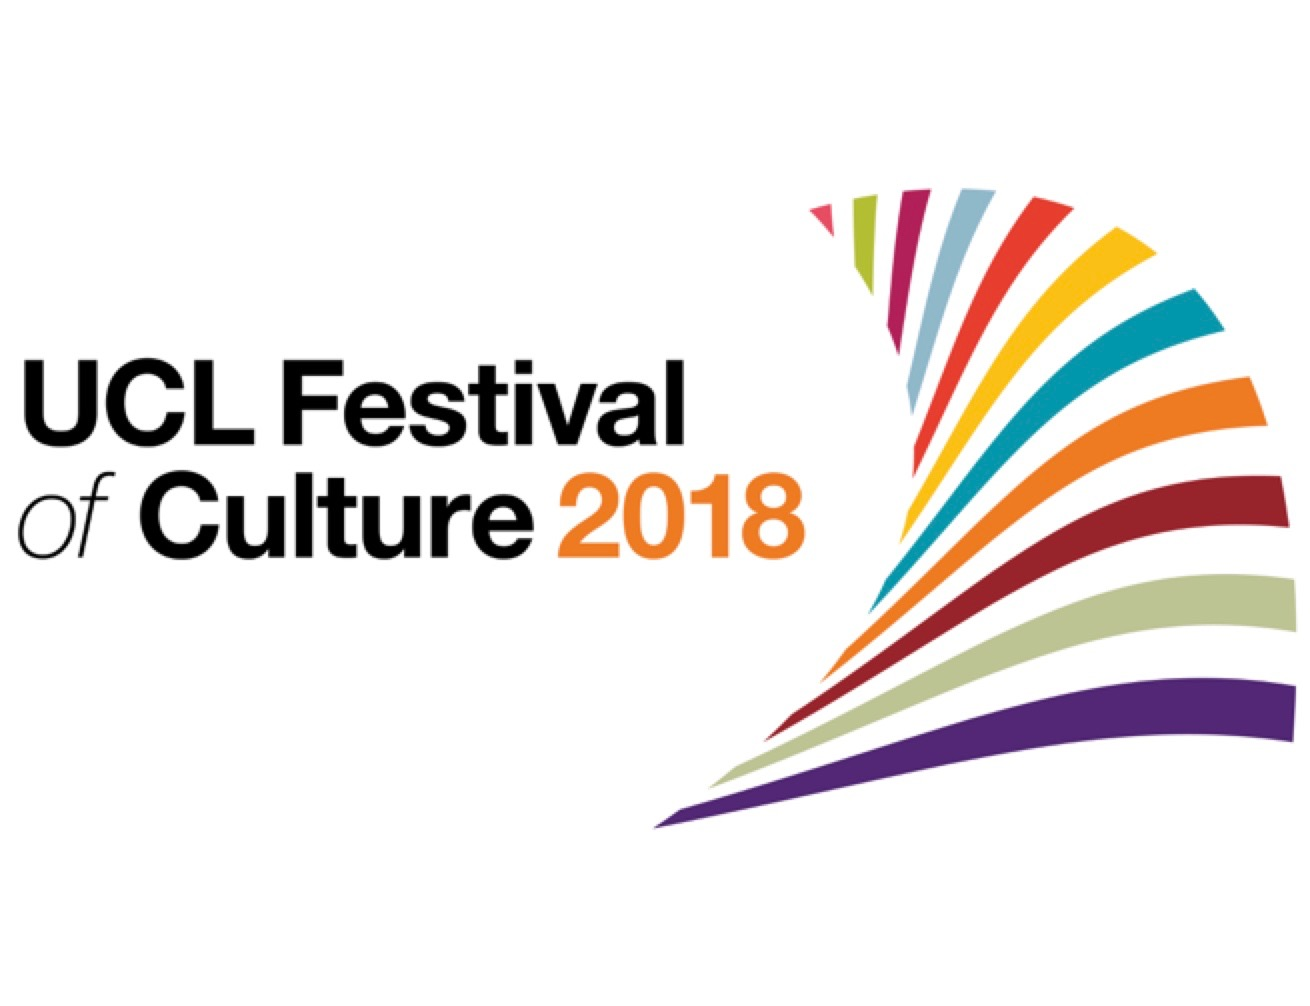 UCL Festival of Culture 2018